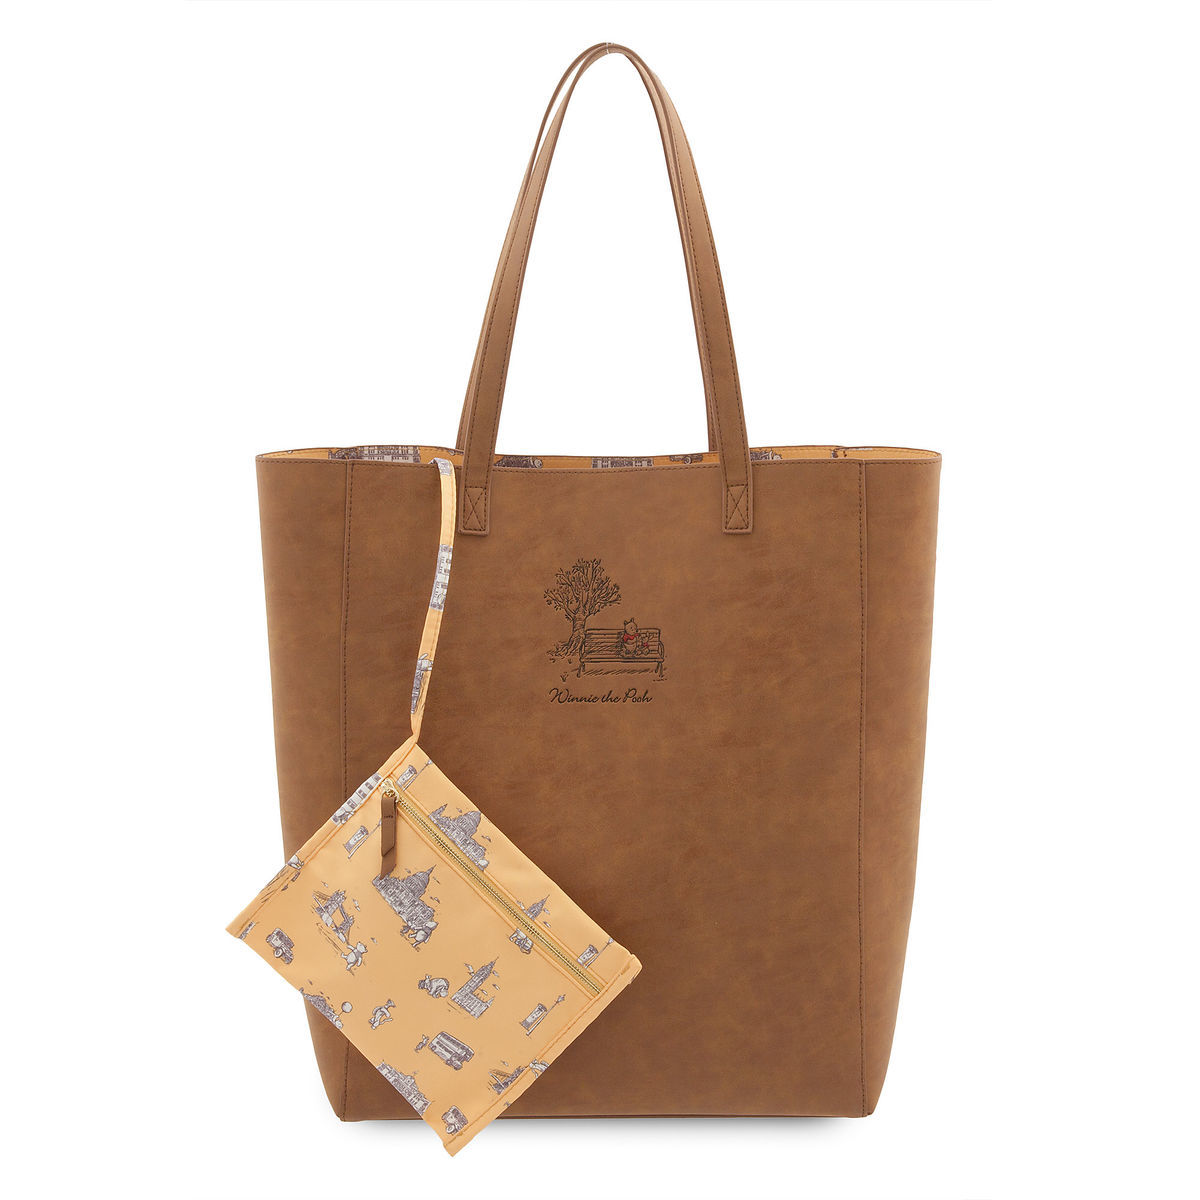 Product Image Of Winnie The Pooh Tote Bag Christopher Robin 1